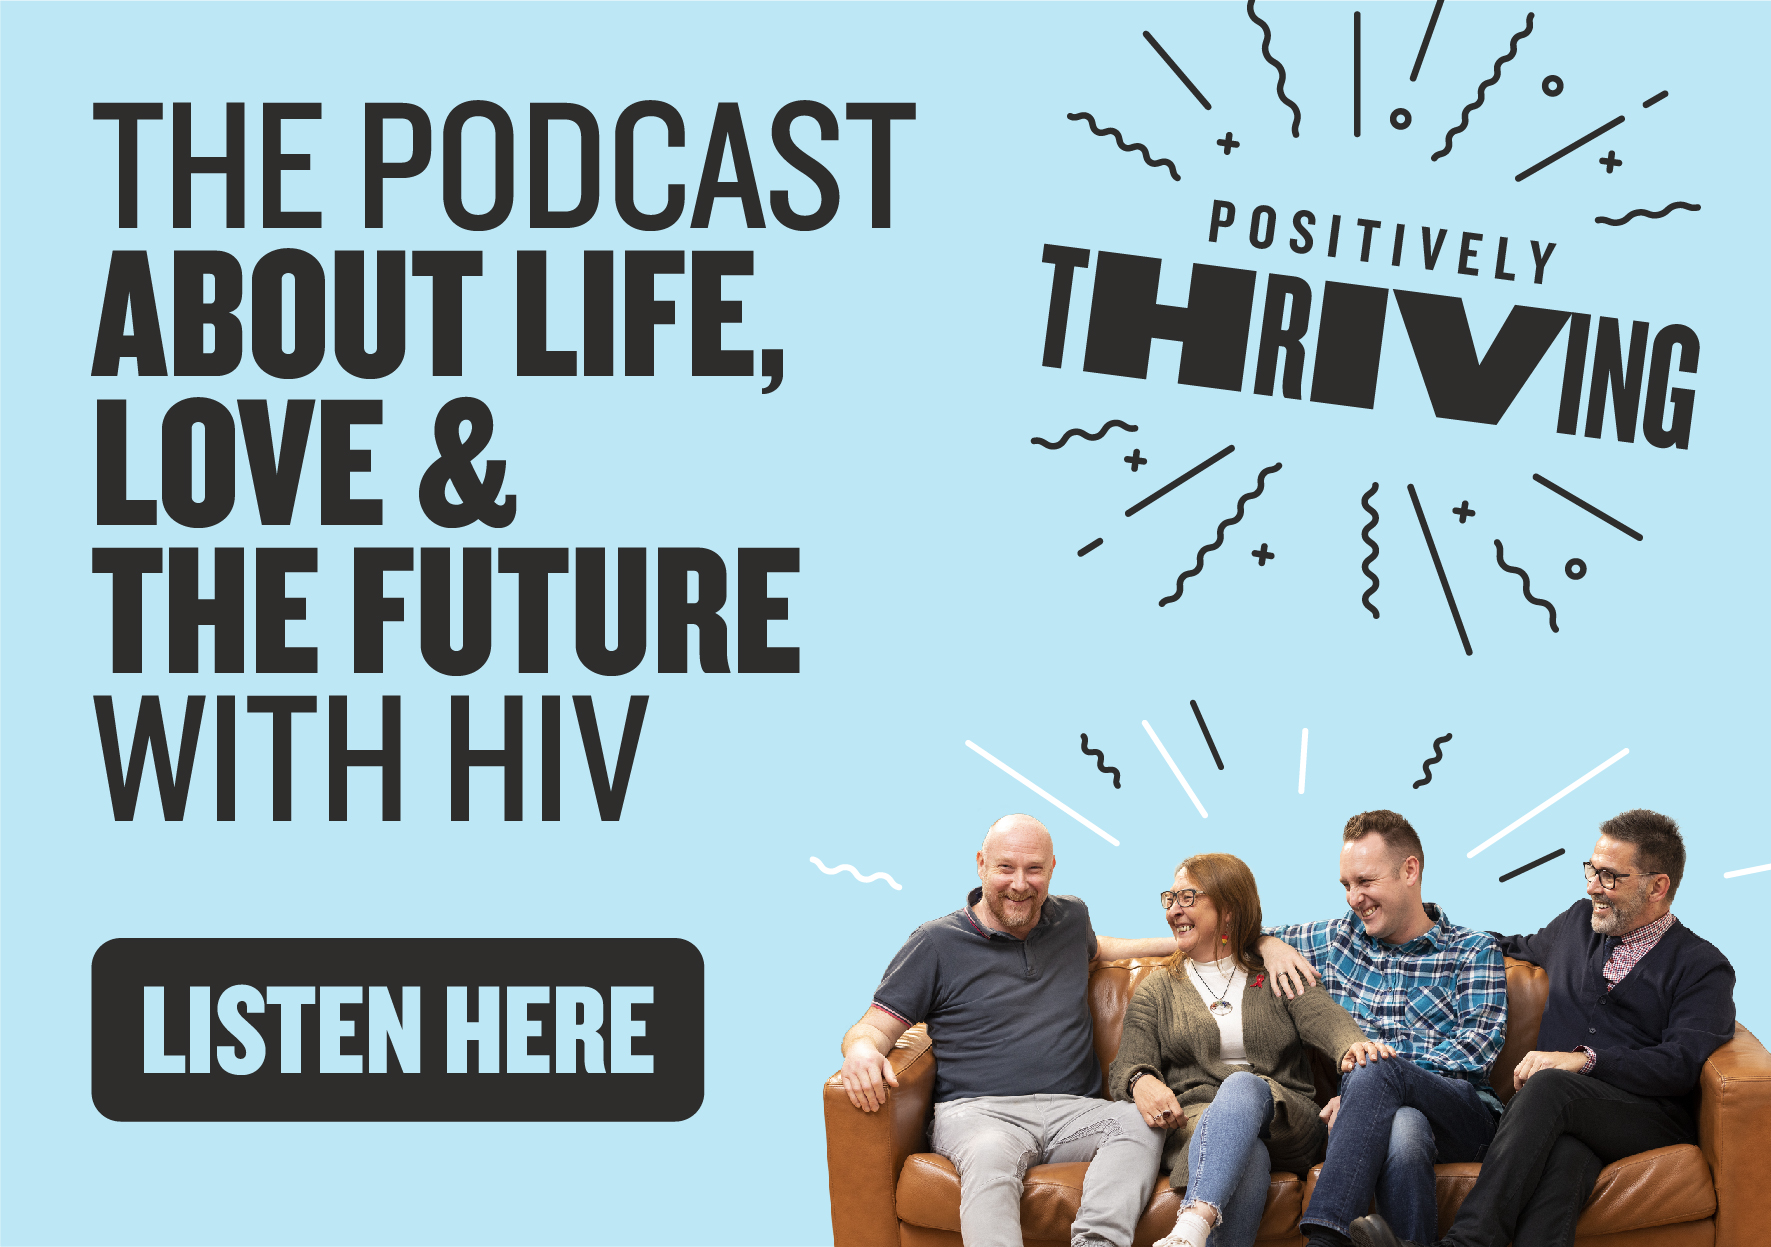 Positively_Thriving_article_banner